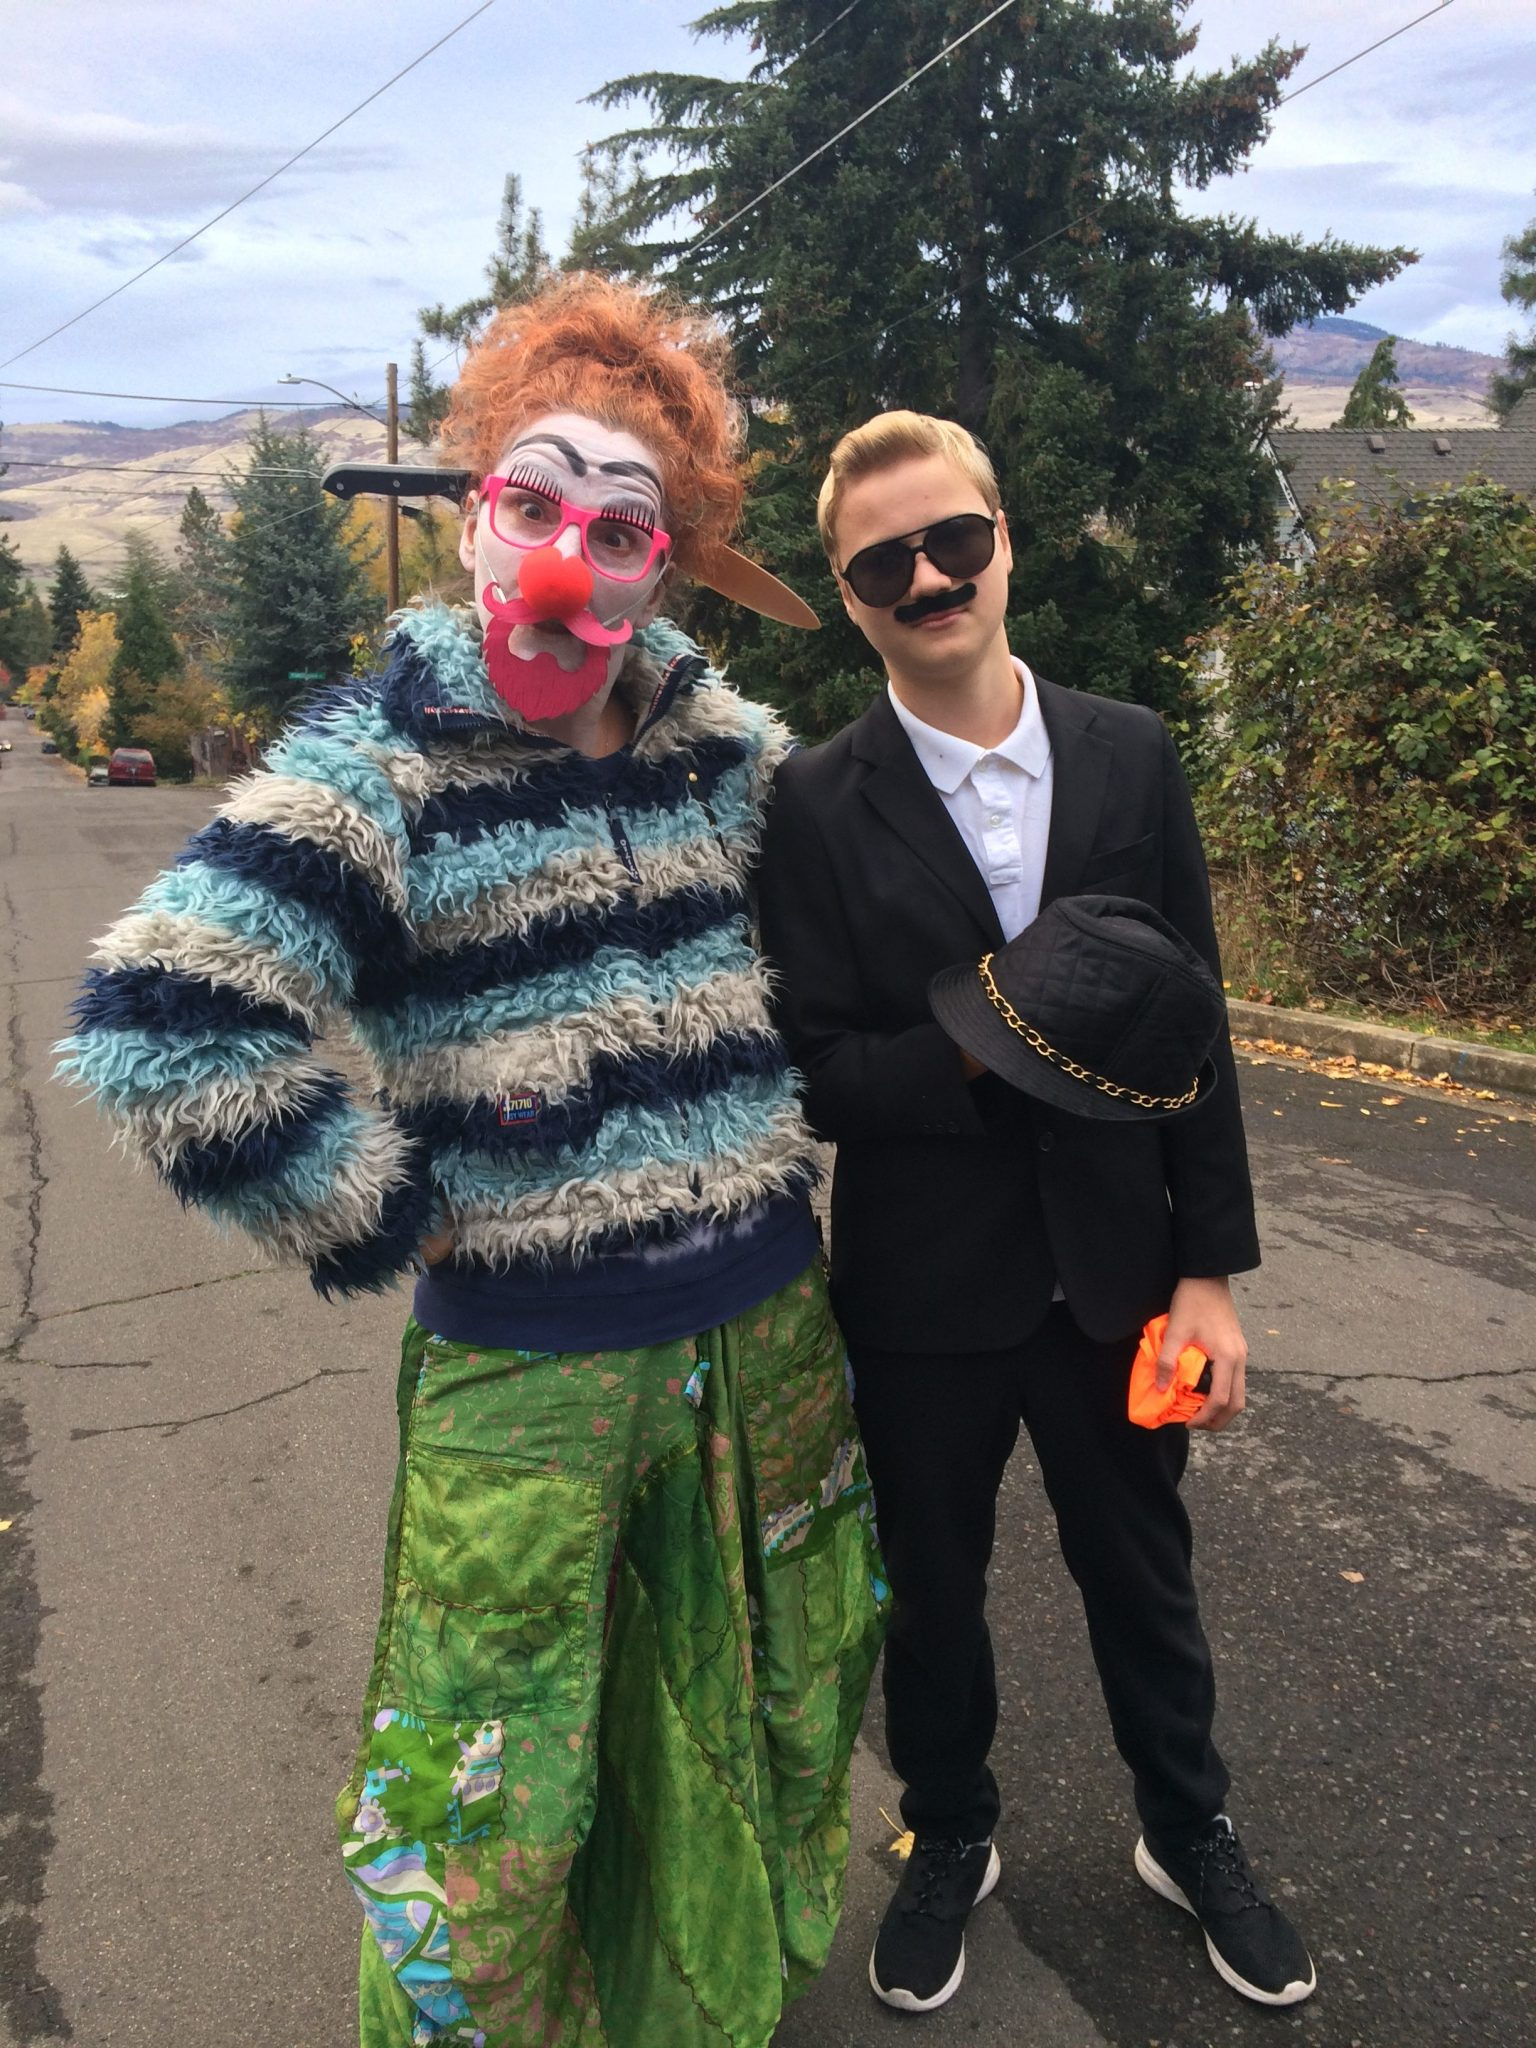 Scenes from the Halloween parade in Ashland, Oregon